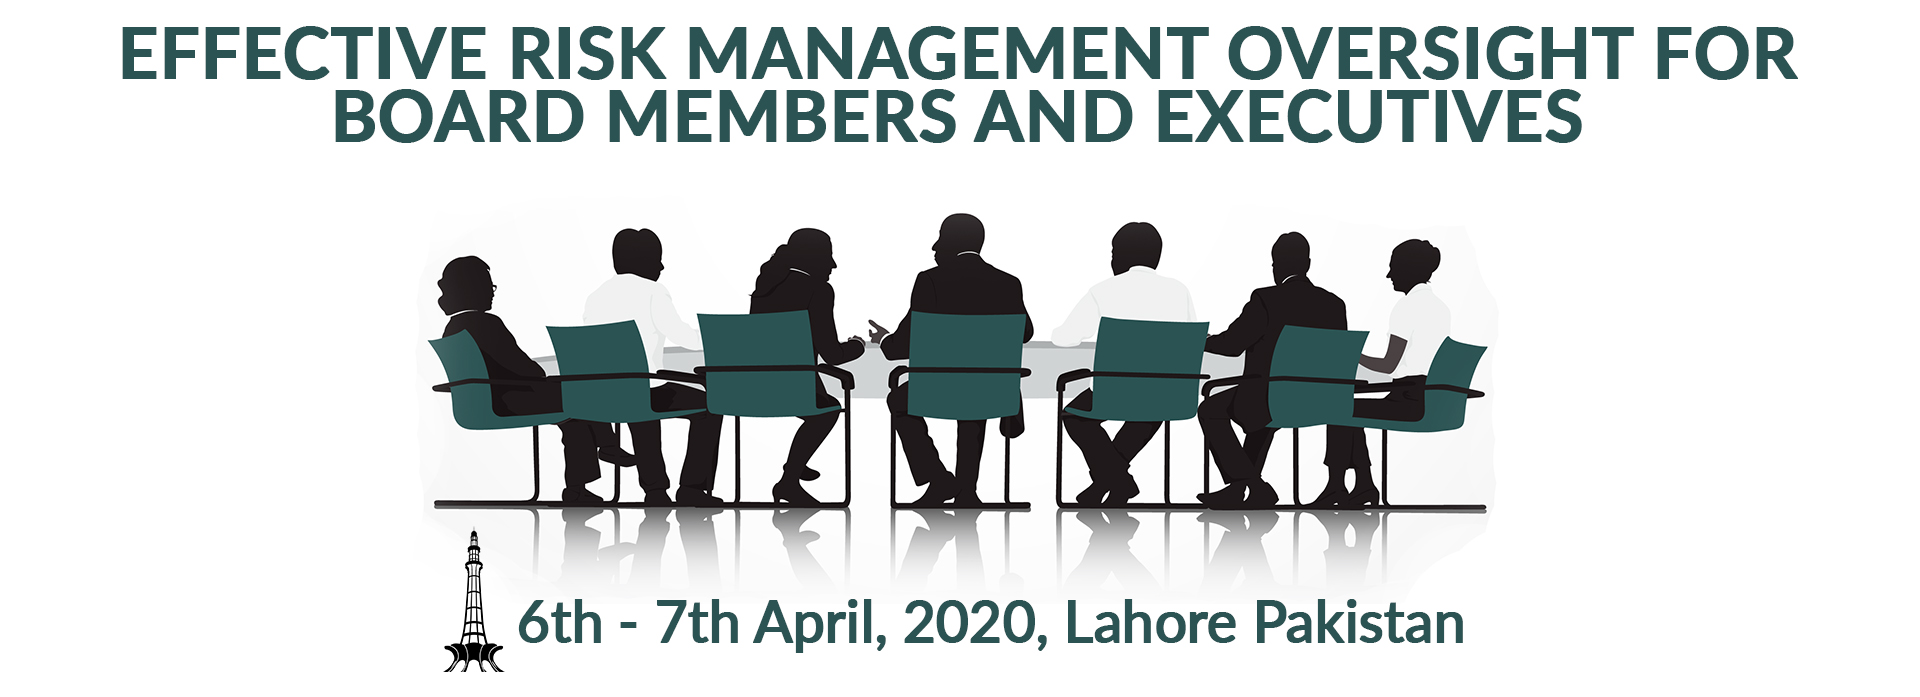 EFFECTIVE RISK MANAGEMENT OVERSIGHT FOR BOARD MEMBERS AND EXECUTIVES